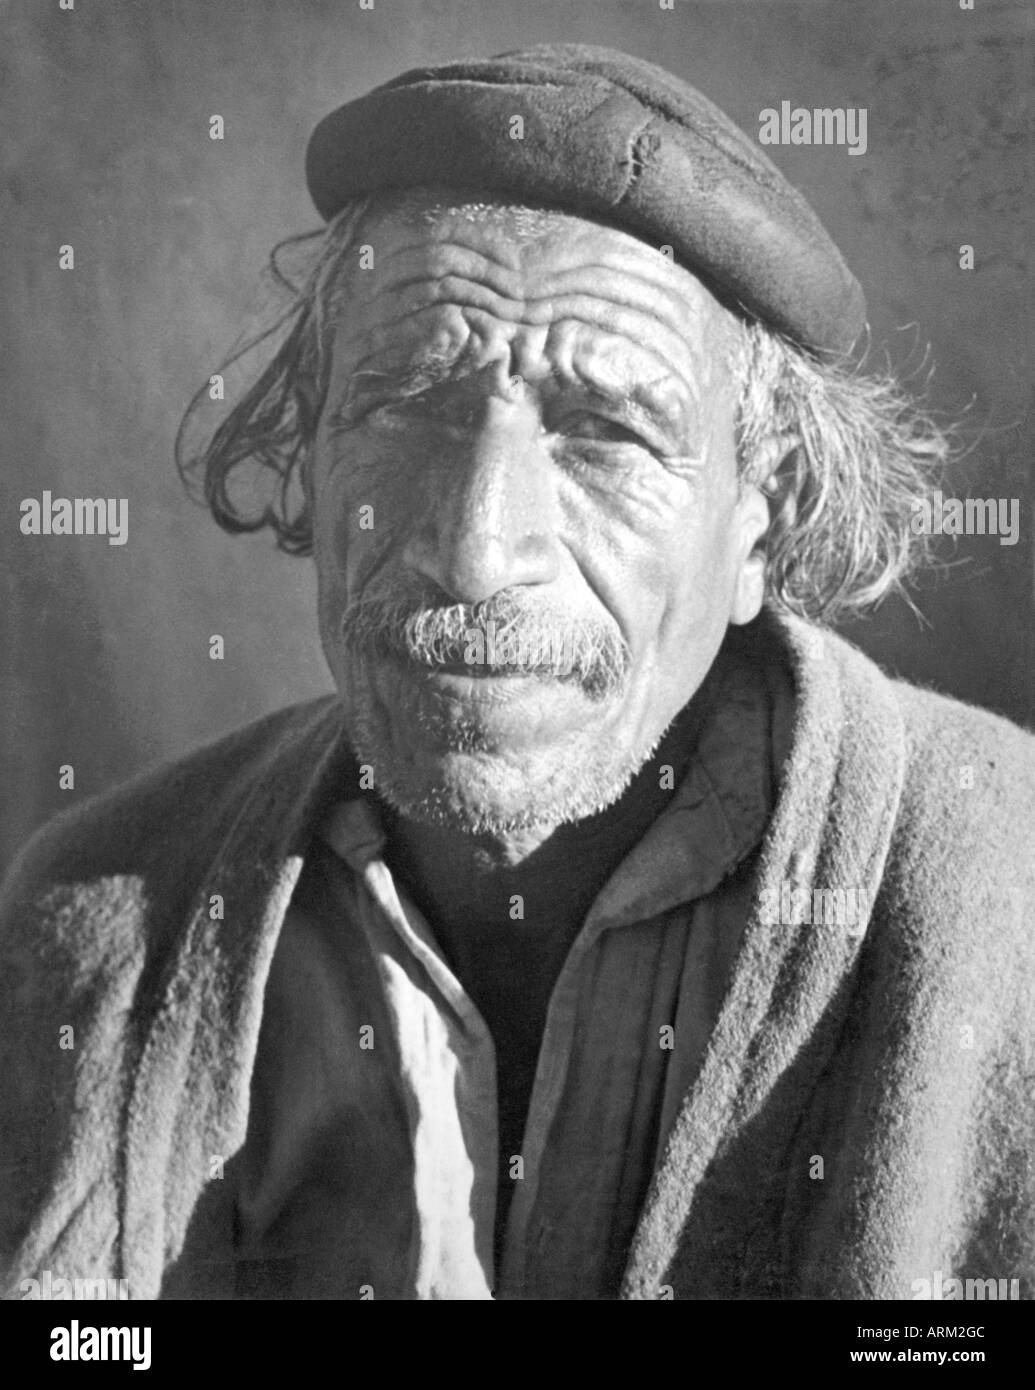 VRB101474 Portrait of Indian rural man from Jannsar Bhabar India 1940s Stock Photo